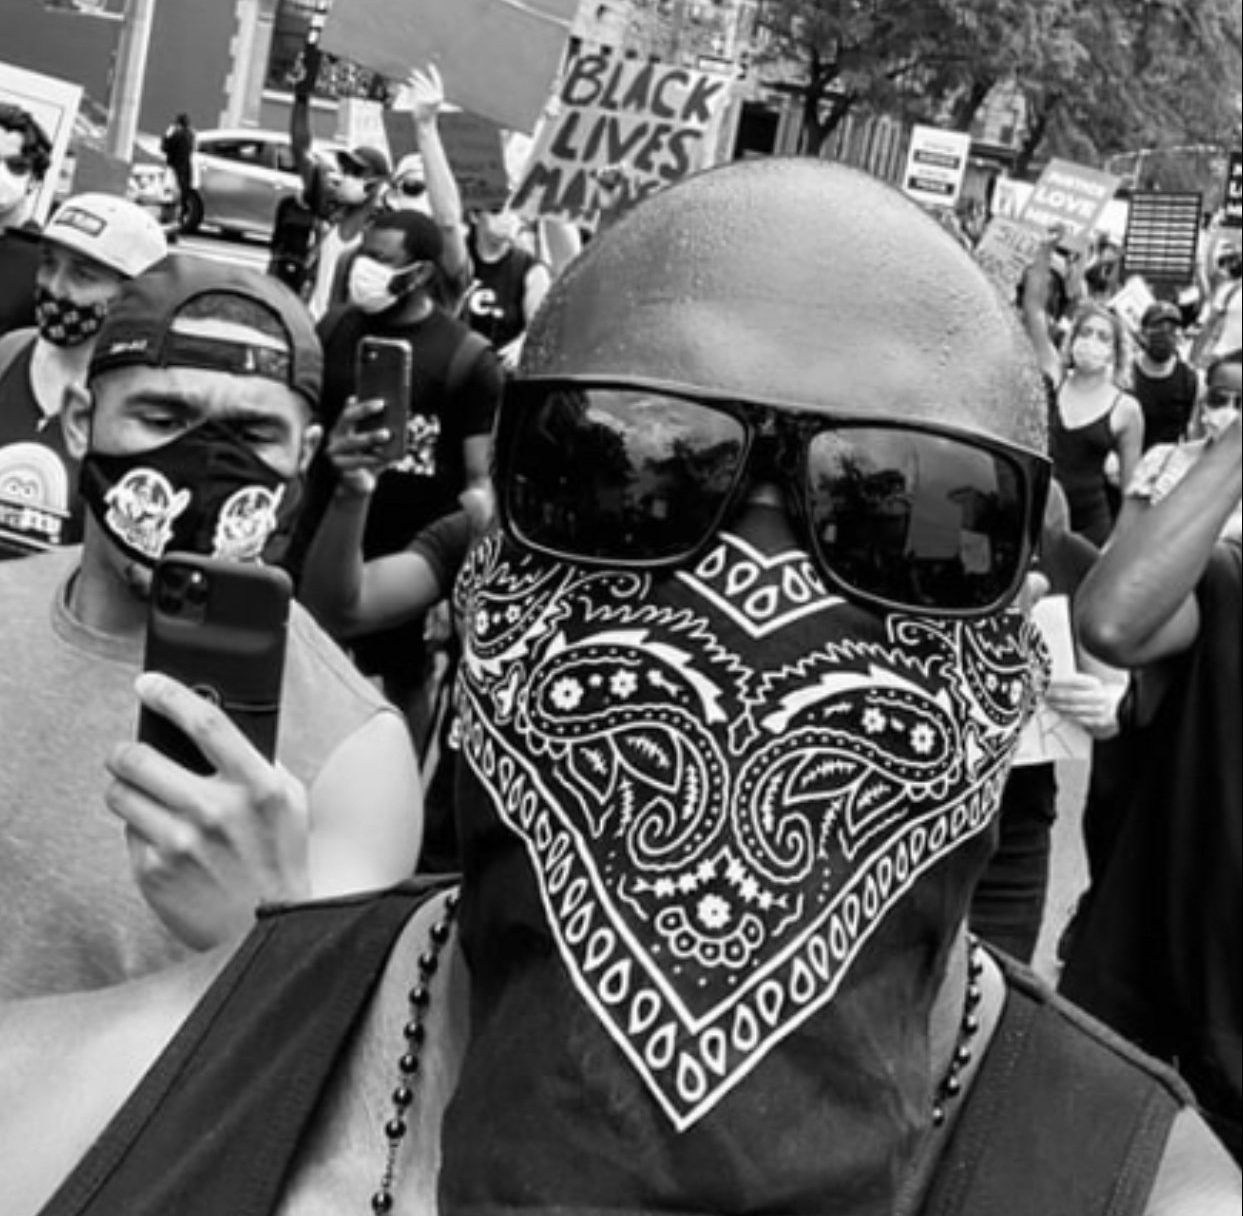 Black and white image of Black man at protest wearing bandana over lower part of face and sunglasses